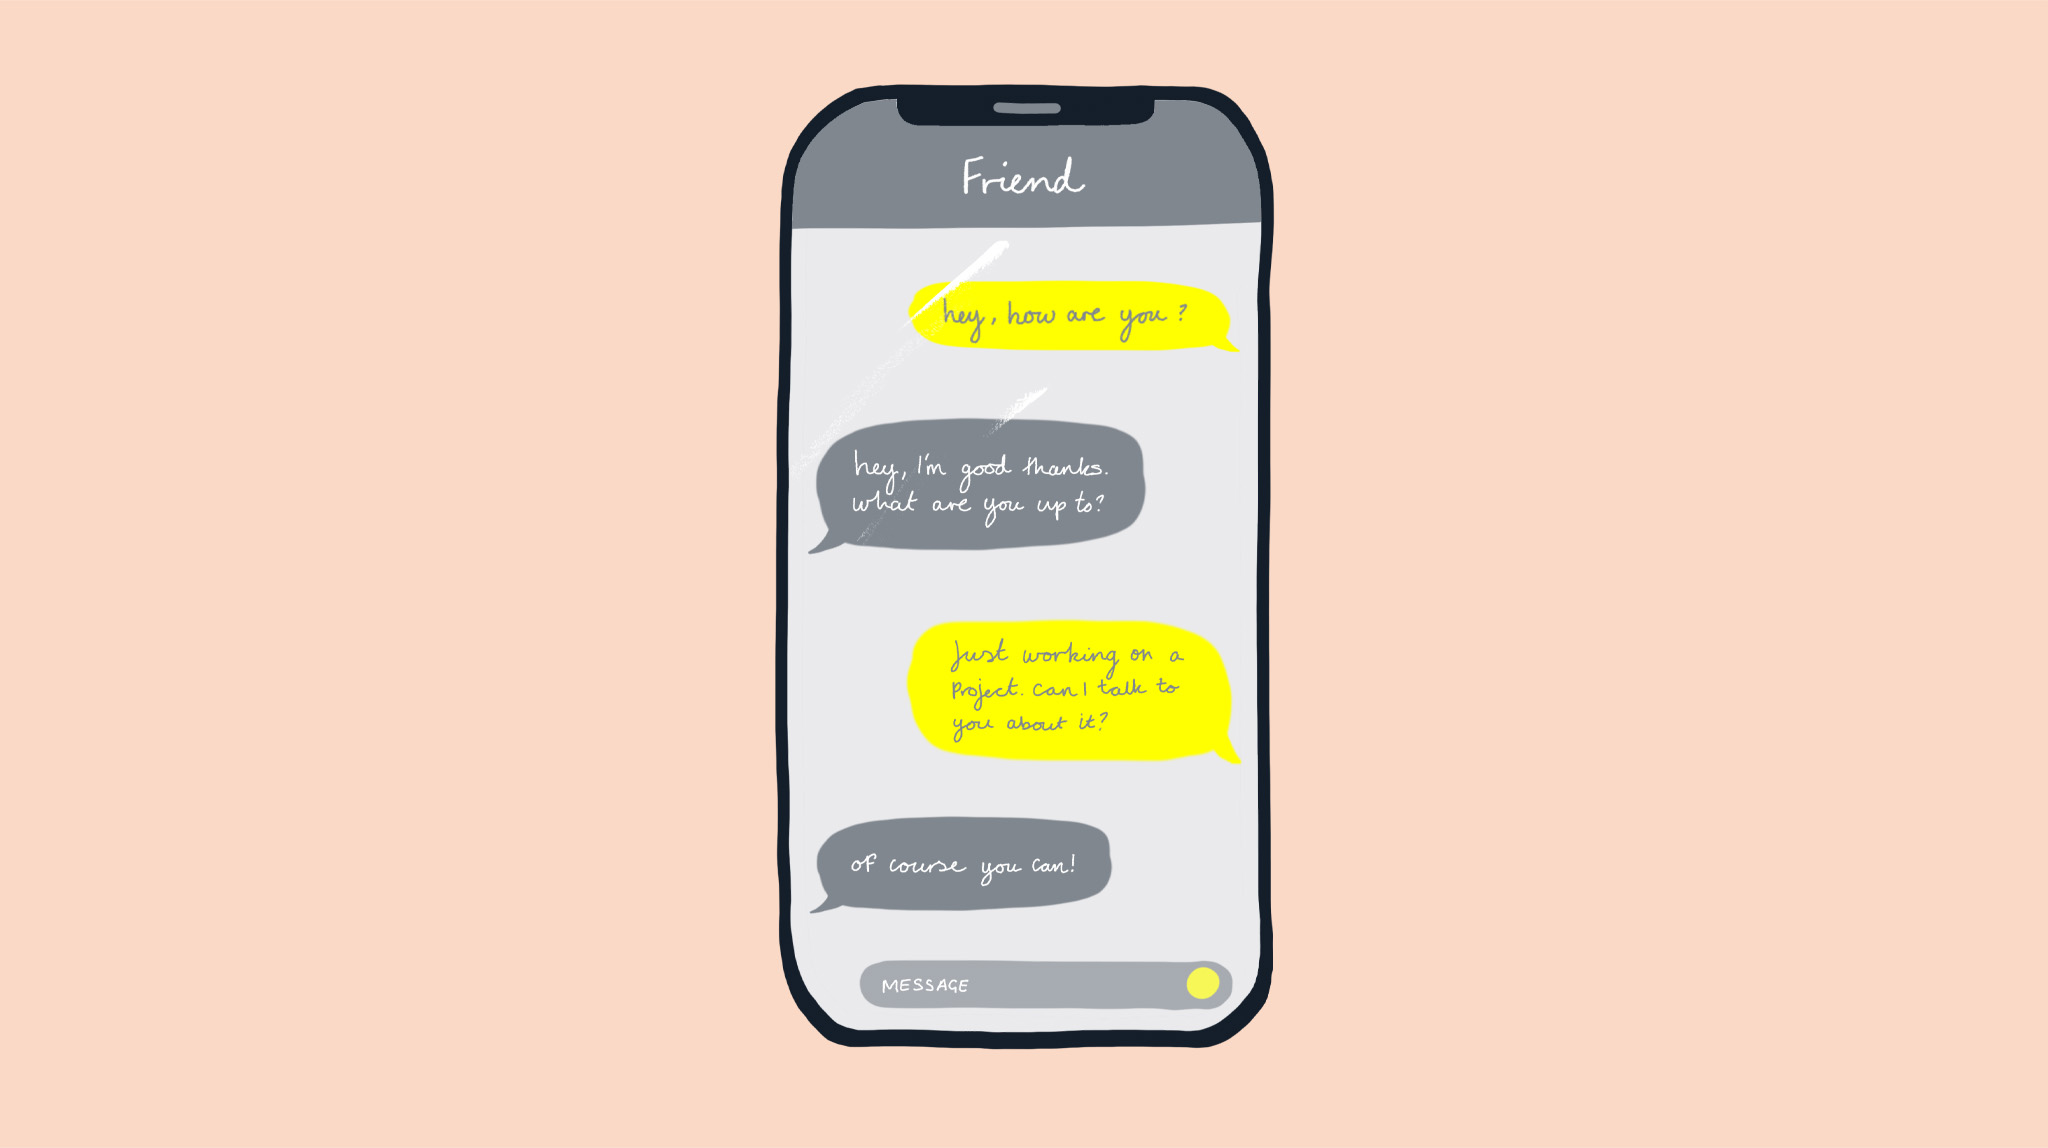 An illustration of a phone and a conversation by MA Communication Design student Charlotte Johnston